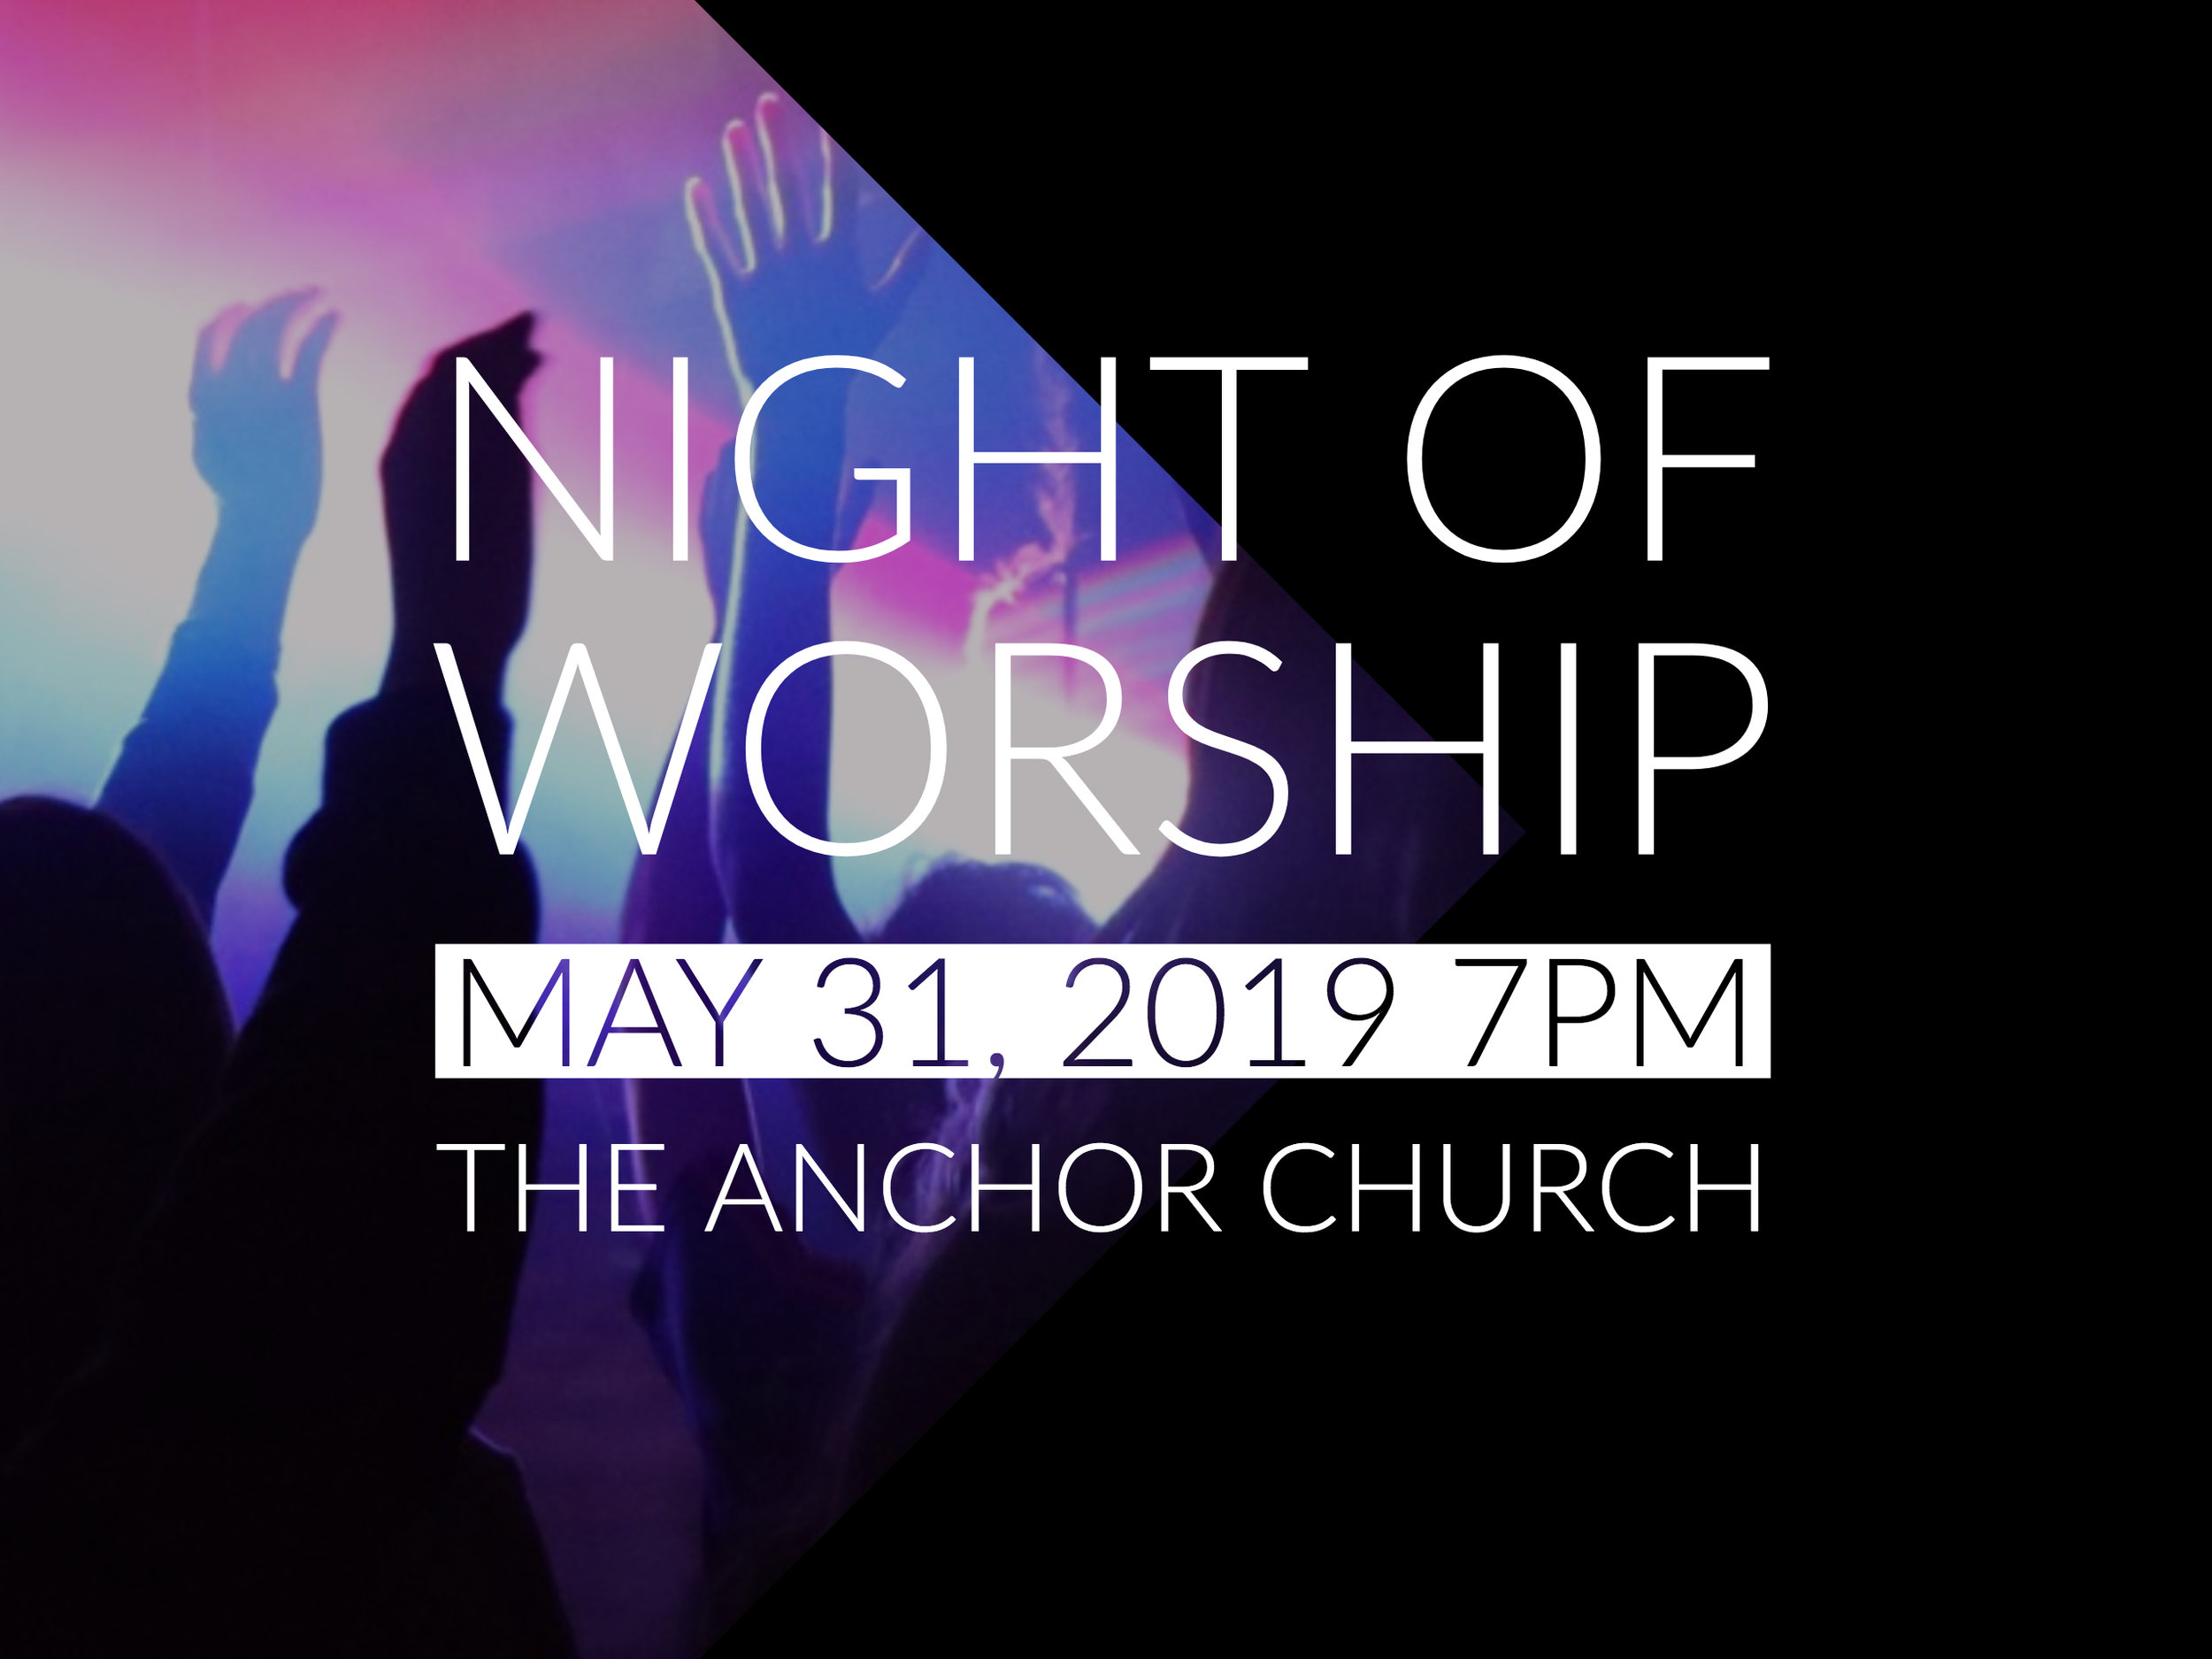 Friday, May 31 Night of Worship at The Anchor Church